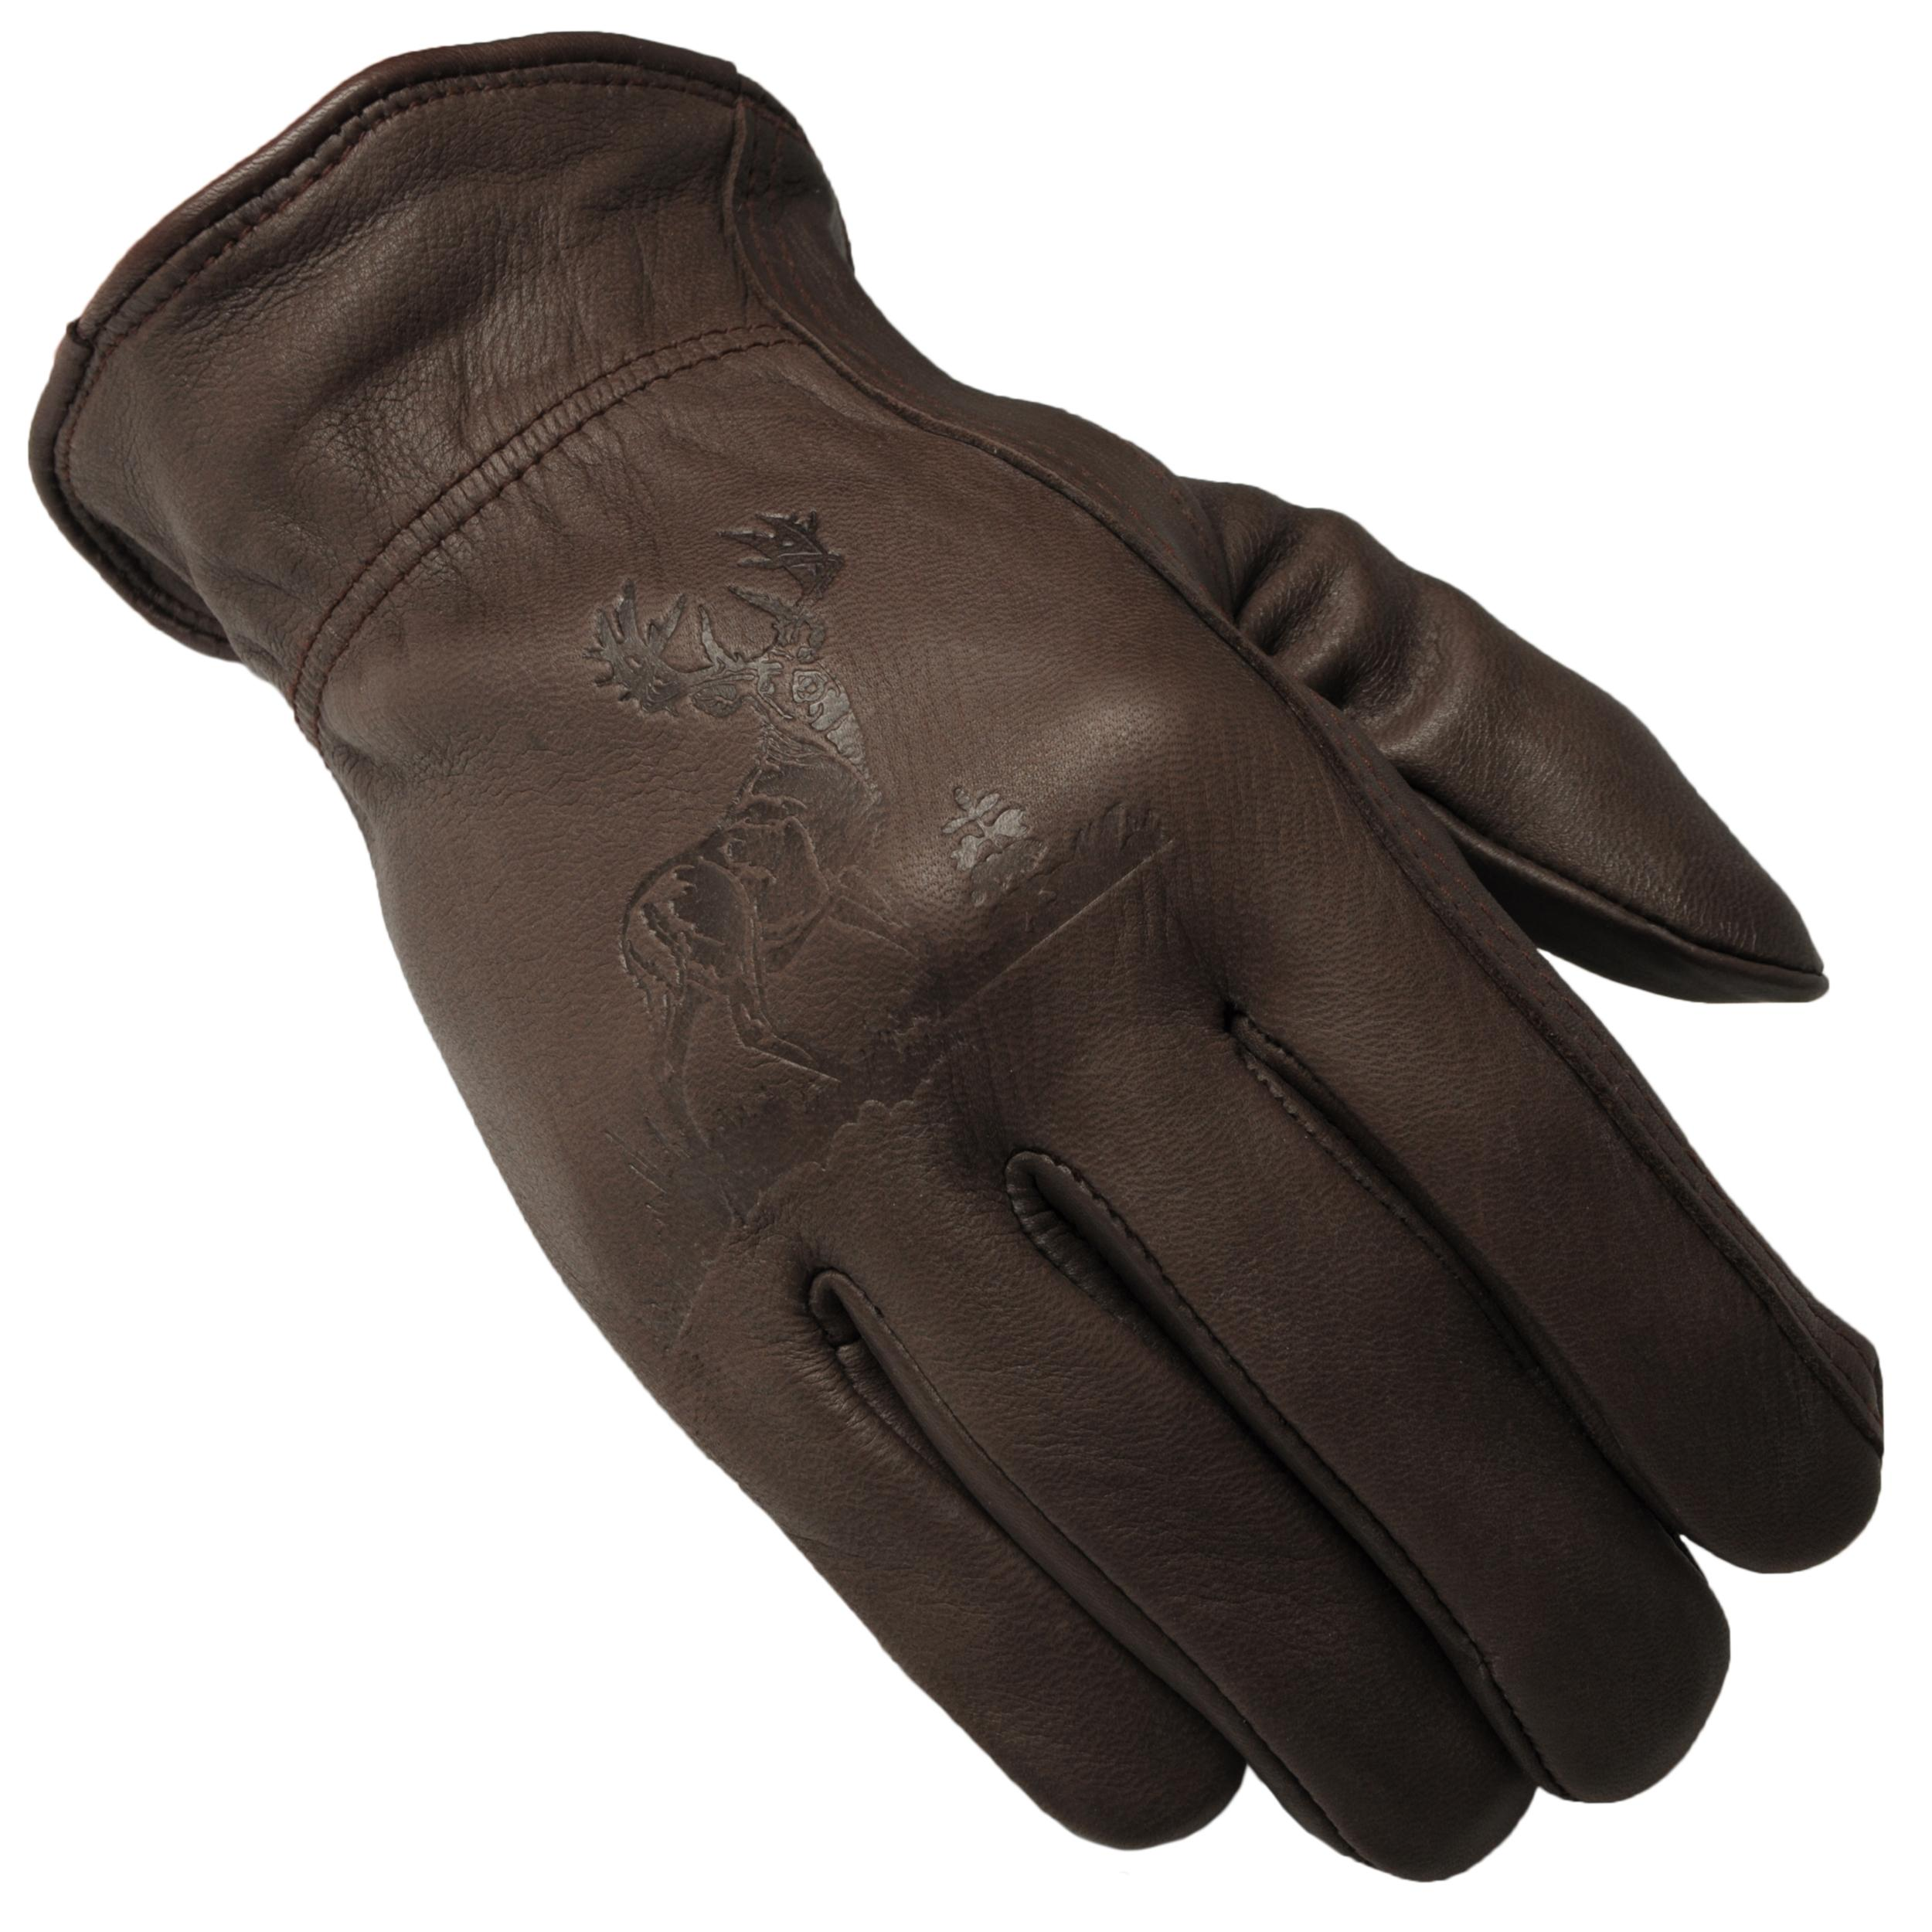 Daxx Men's Top Grain Deerskin Leather Whitetail Wildlife Print Gloves